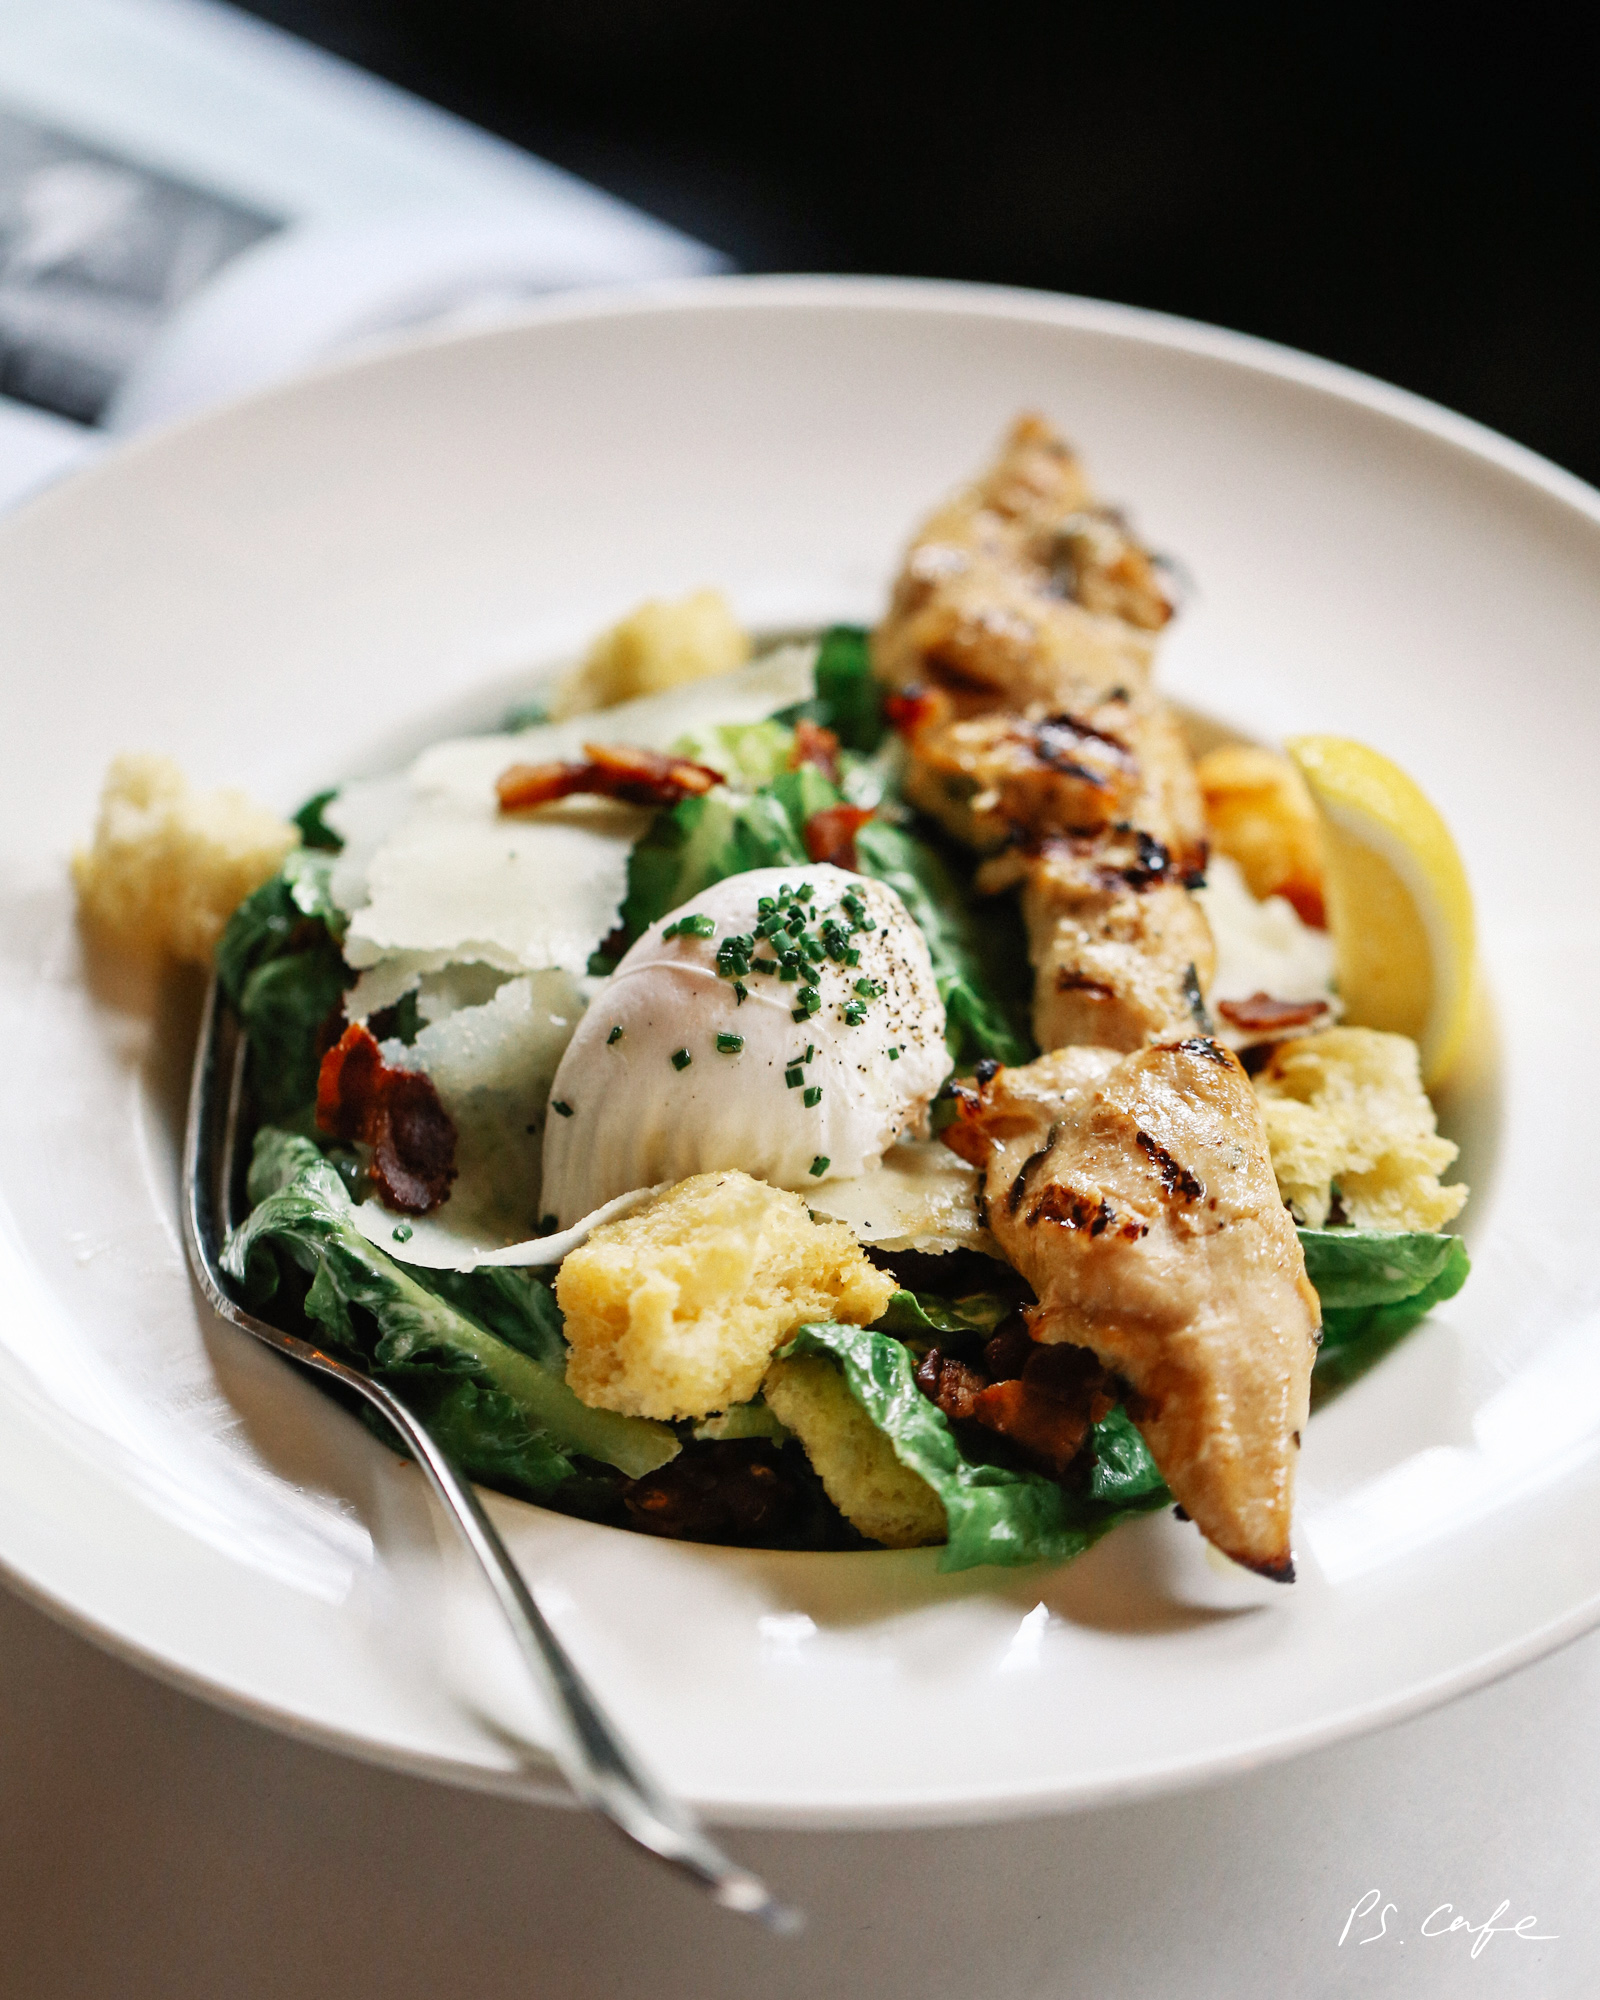 PS Caesar Salad with rosemary grilled chicken